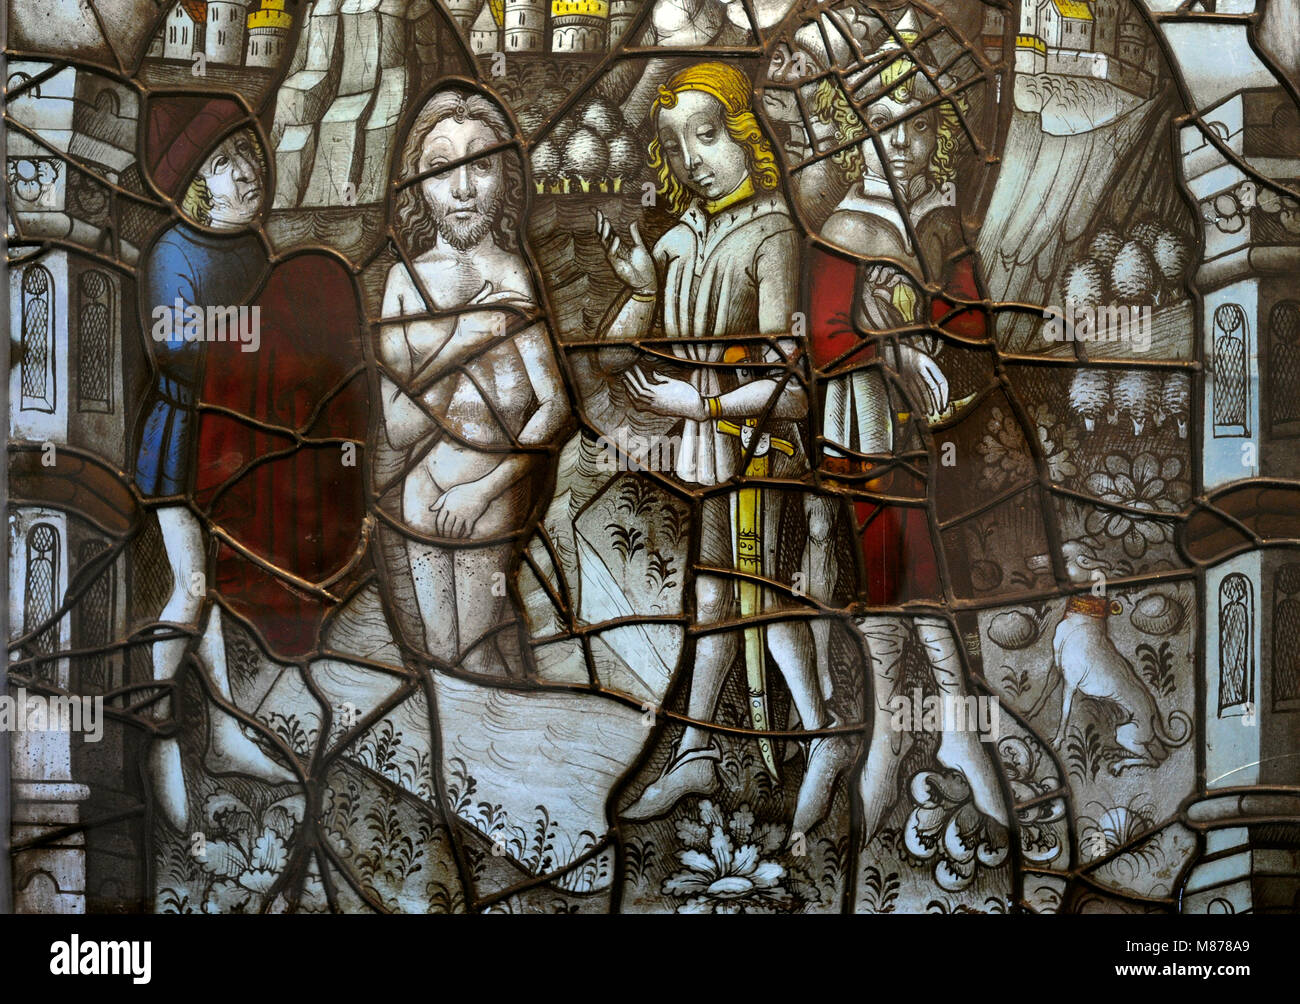 Stained glass from Cloister of the Cistercian Monastery Altenberg, Cologne, Germany, 1465. The Healing of Naaman - Stock Image